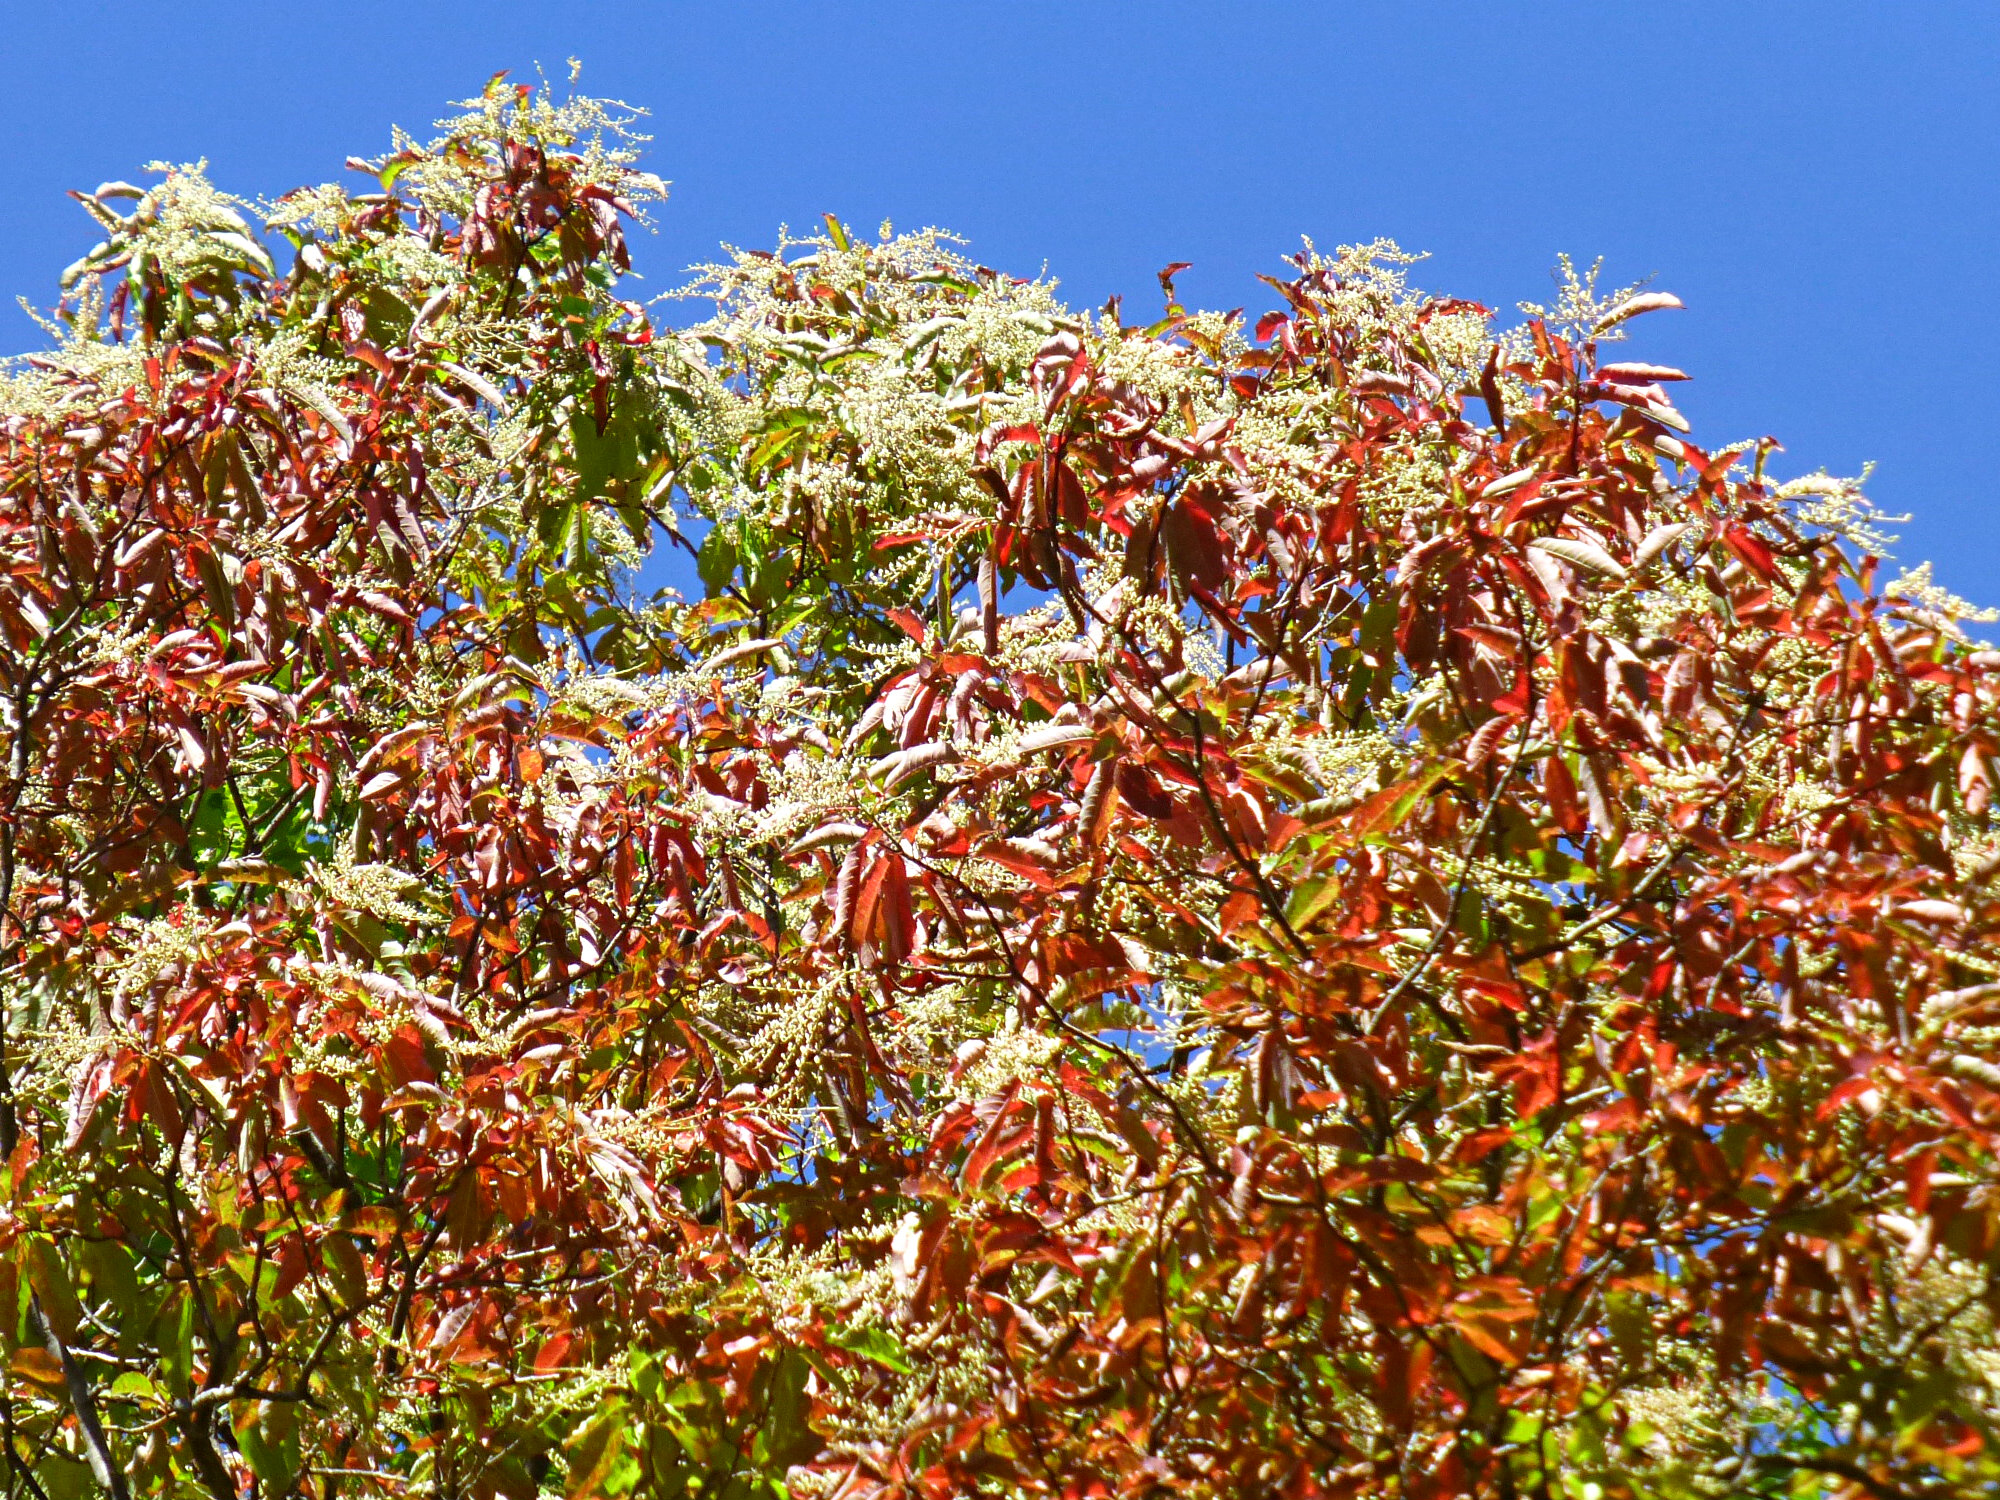 Close up of tree with bright colorful leaves and fringes of flower fronds at the tips